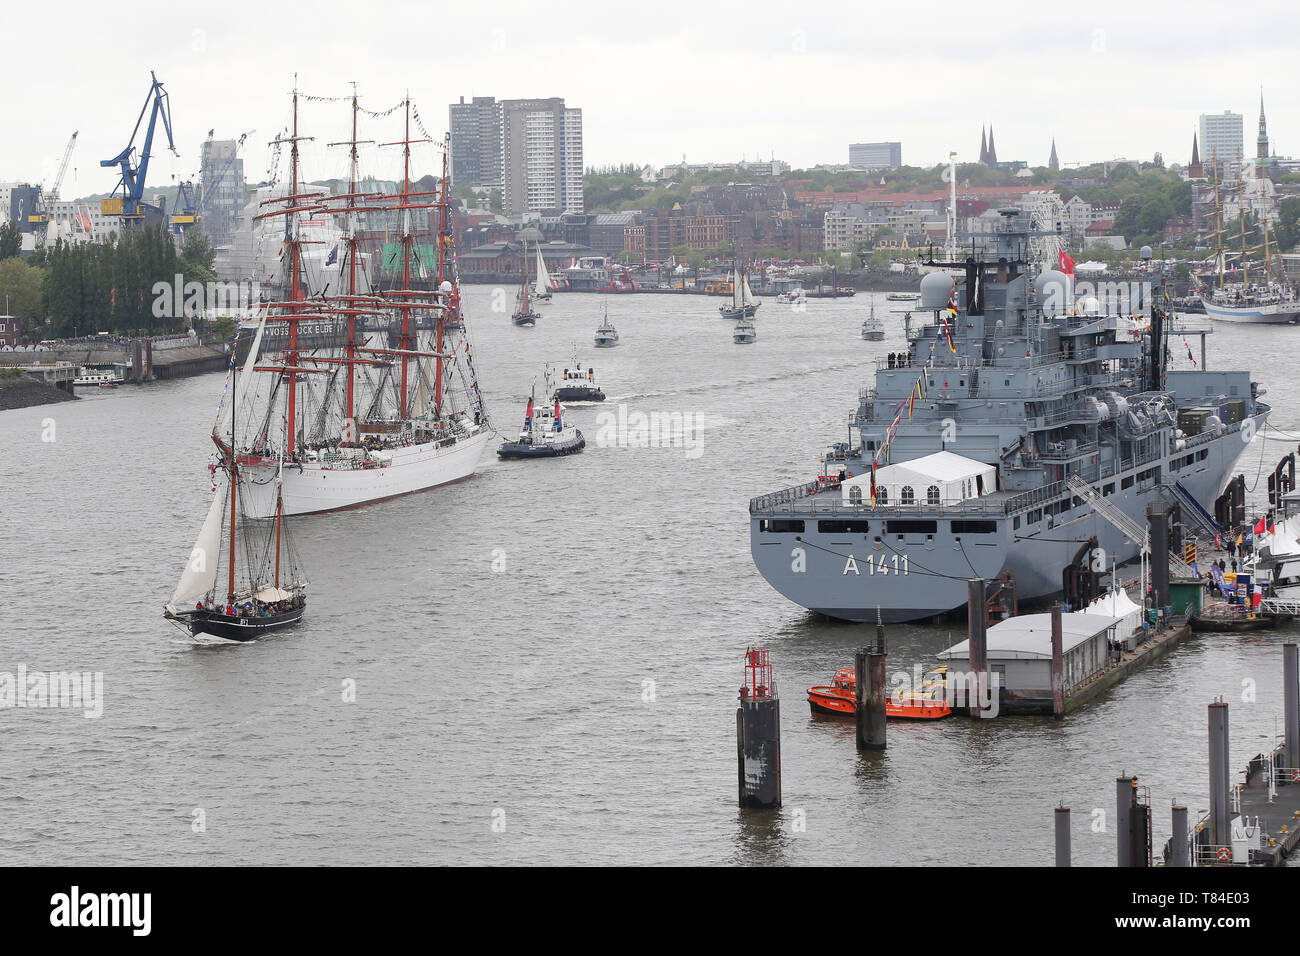 Hamburg, Germany. 10th May, 2019. The Russian tall ship Sedov (l) sails along the A1411 during the entry parade of the harbour birthday on the Elbe. The 830th Hamburg Harbour Birthday has begun. The people of Hamburg regard 7 May 1189 as the birthday of their port - at that time the citizens of Hamburg were granted duty-free access for their ships on the Elbe from the city to the North Sea. It is considered the world's largest harbour festival. Credit: Bodo Marks/dpa/Alamy Live News - Stock Image